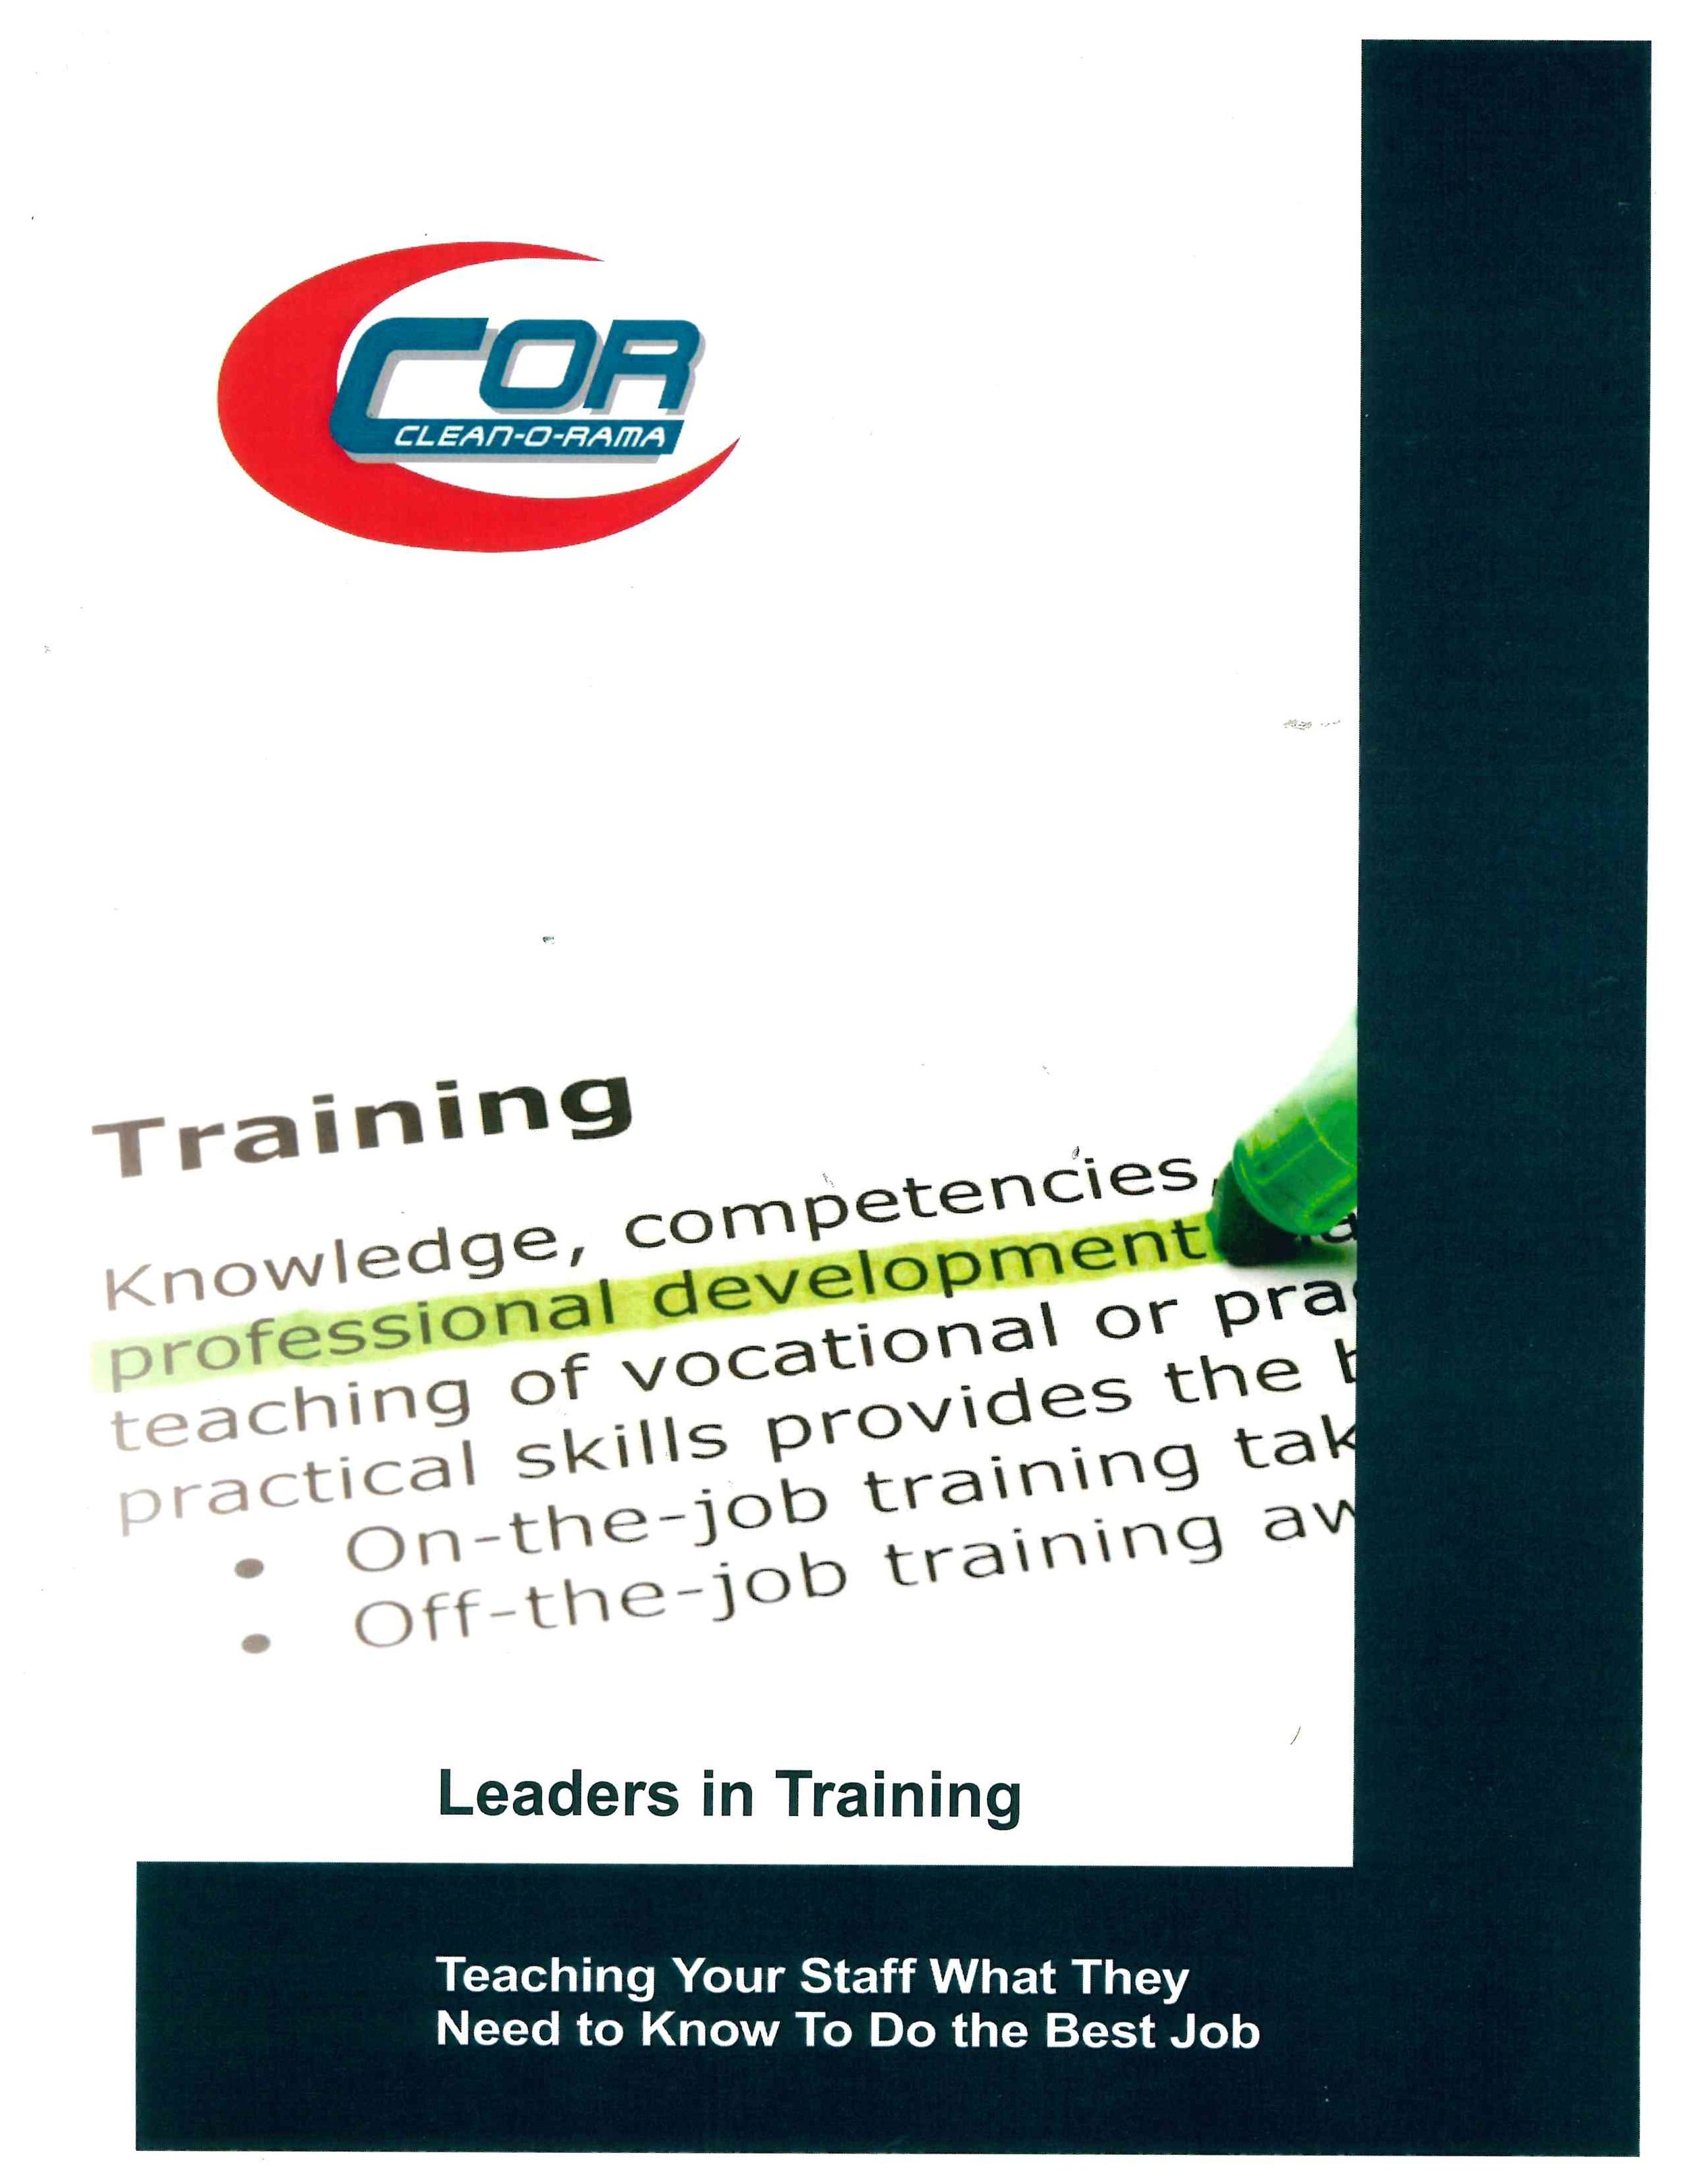 training front page.jpg